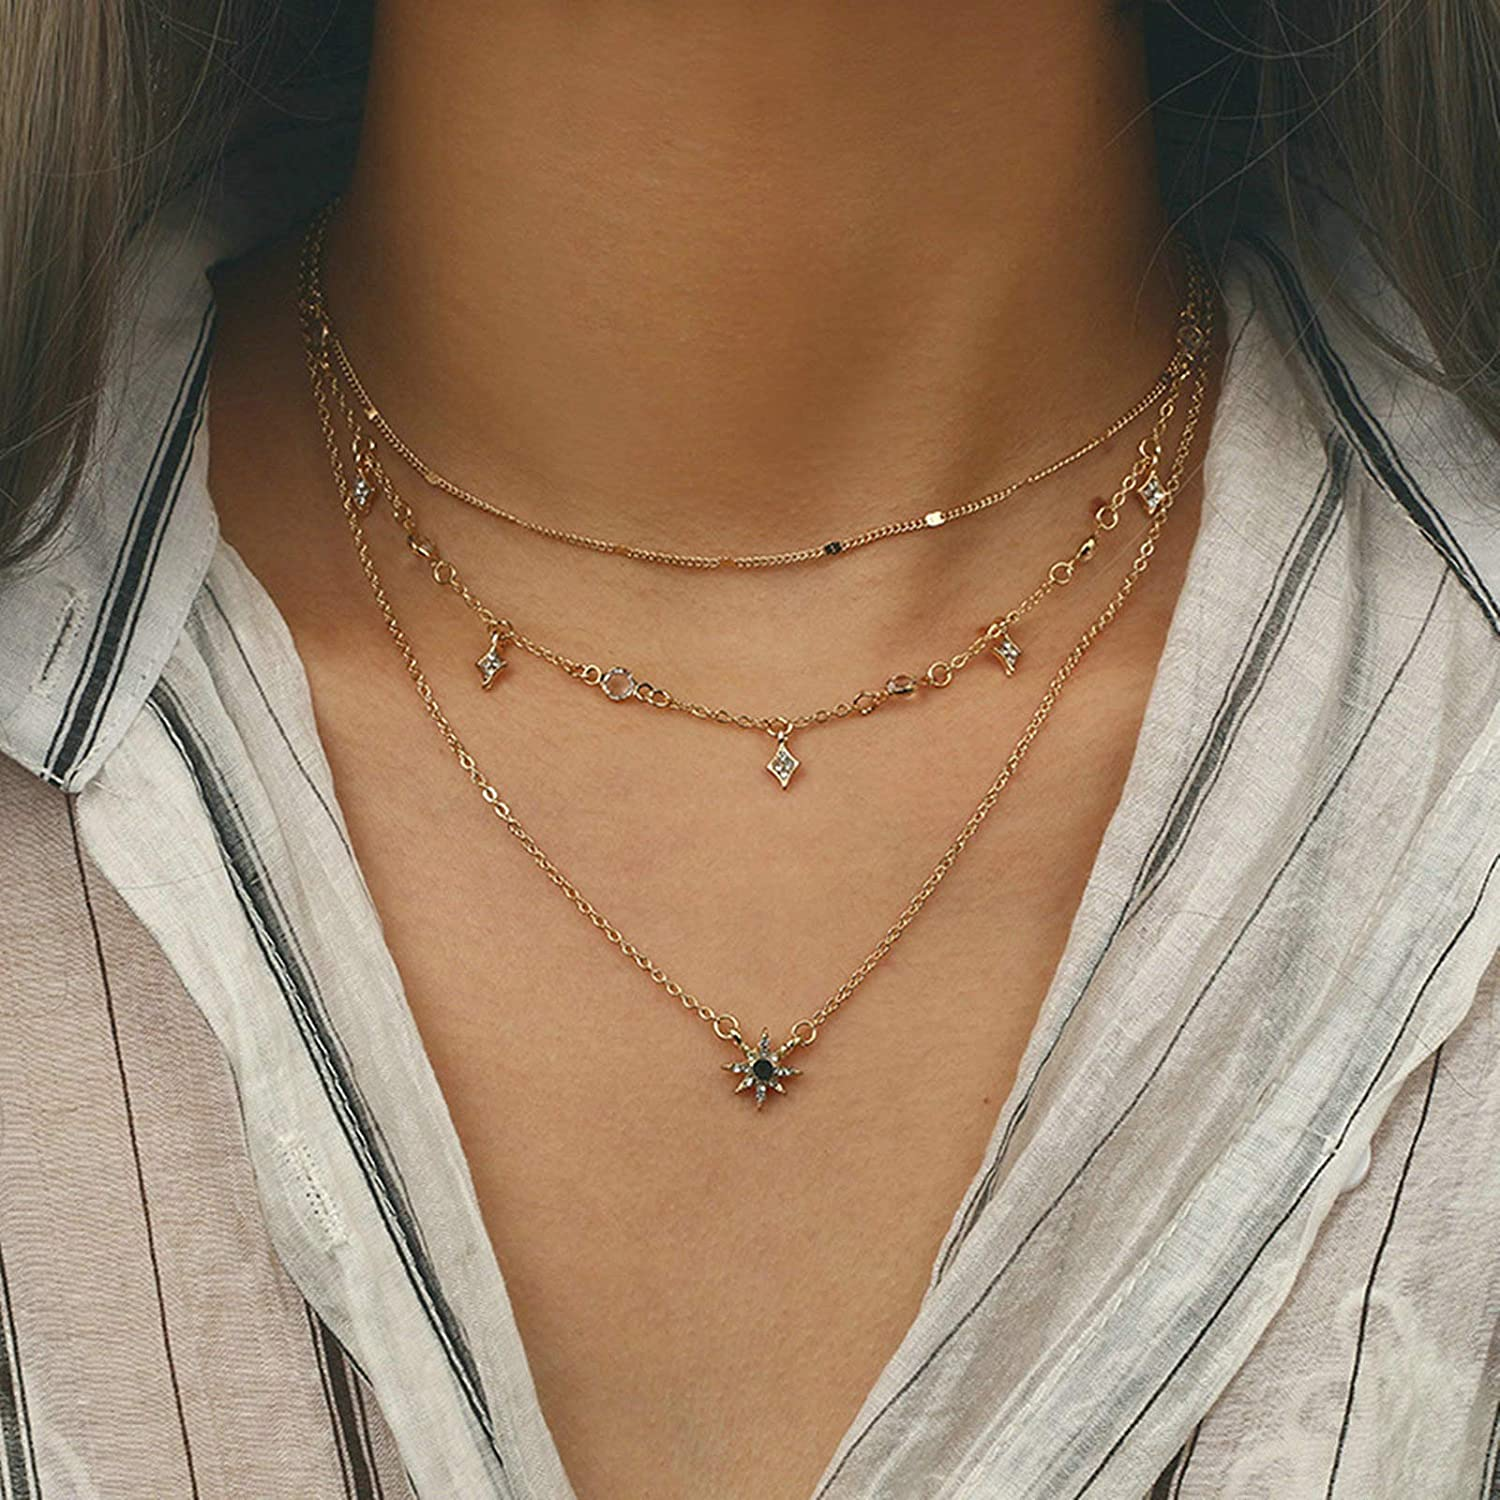 Gnzoe Jewelry Women Stainless Steel Necklace Pearl White Women Chain 45+5CM